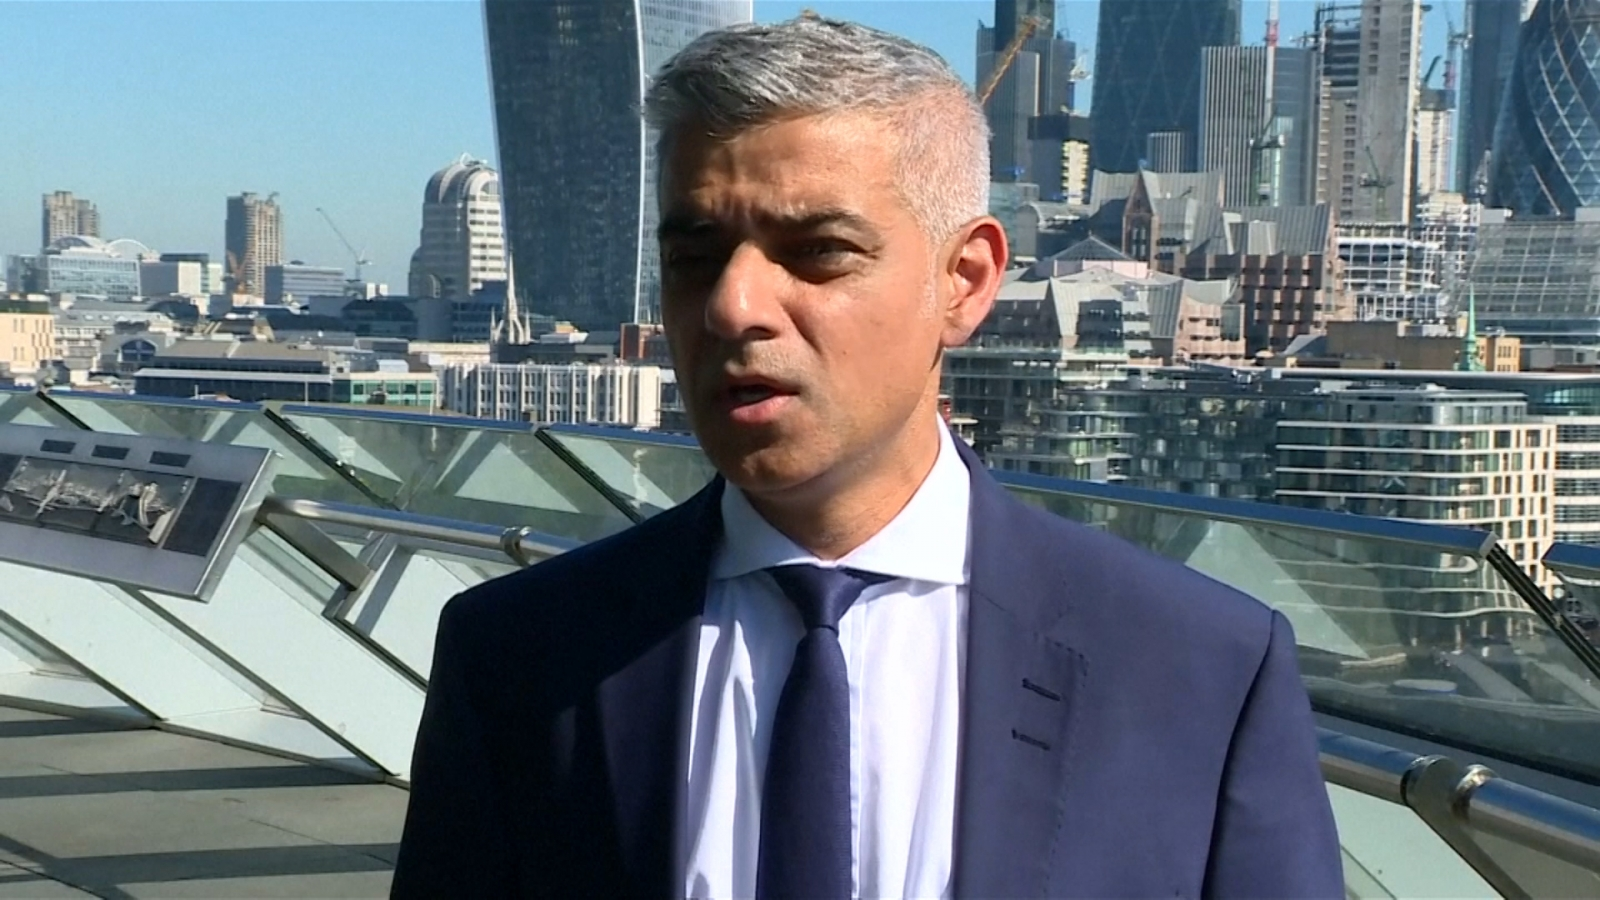 'No deal' Brexit could cost Britain about 500000 jobs, London mayor says